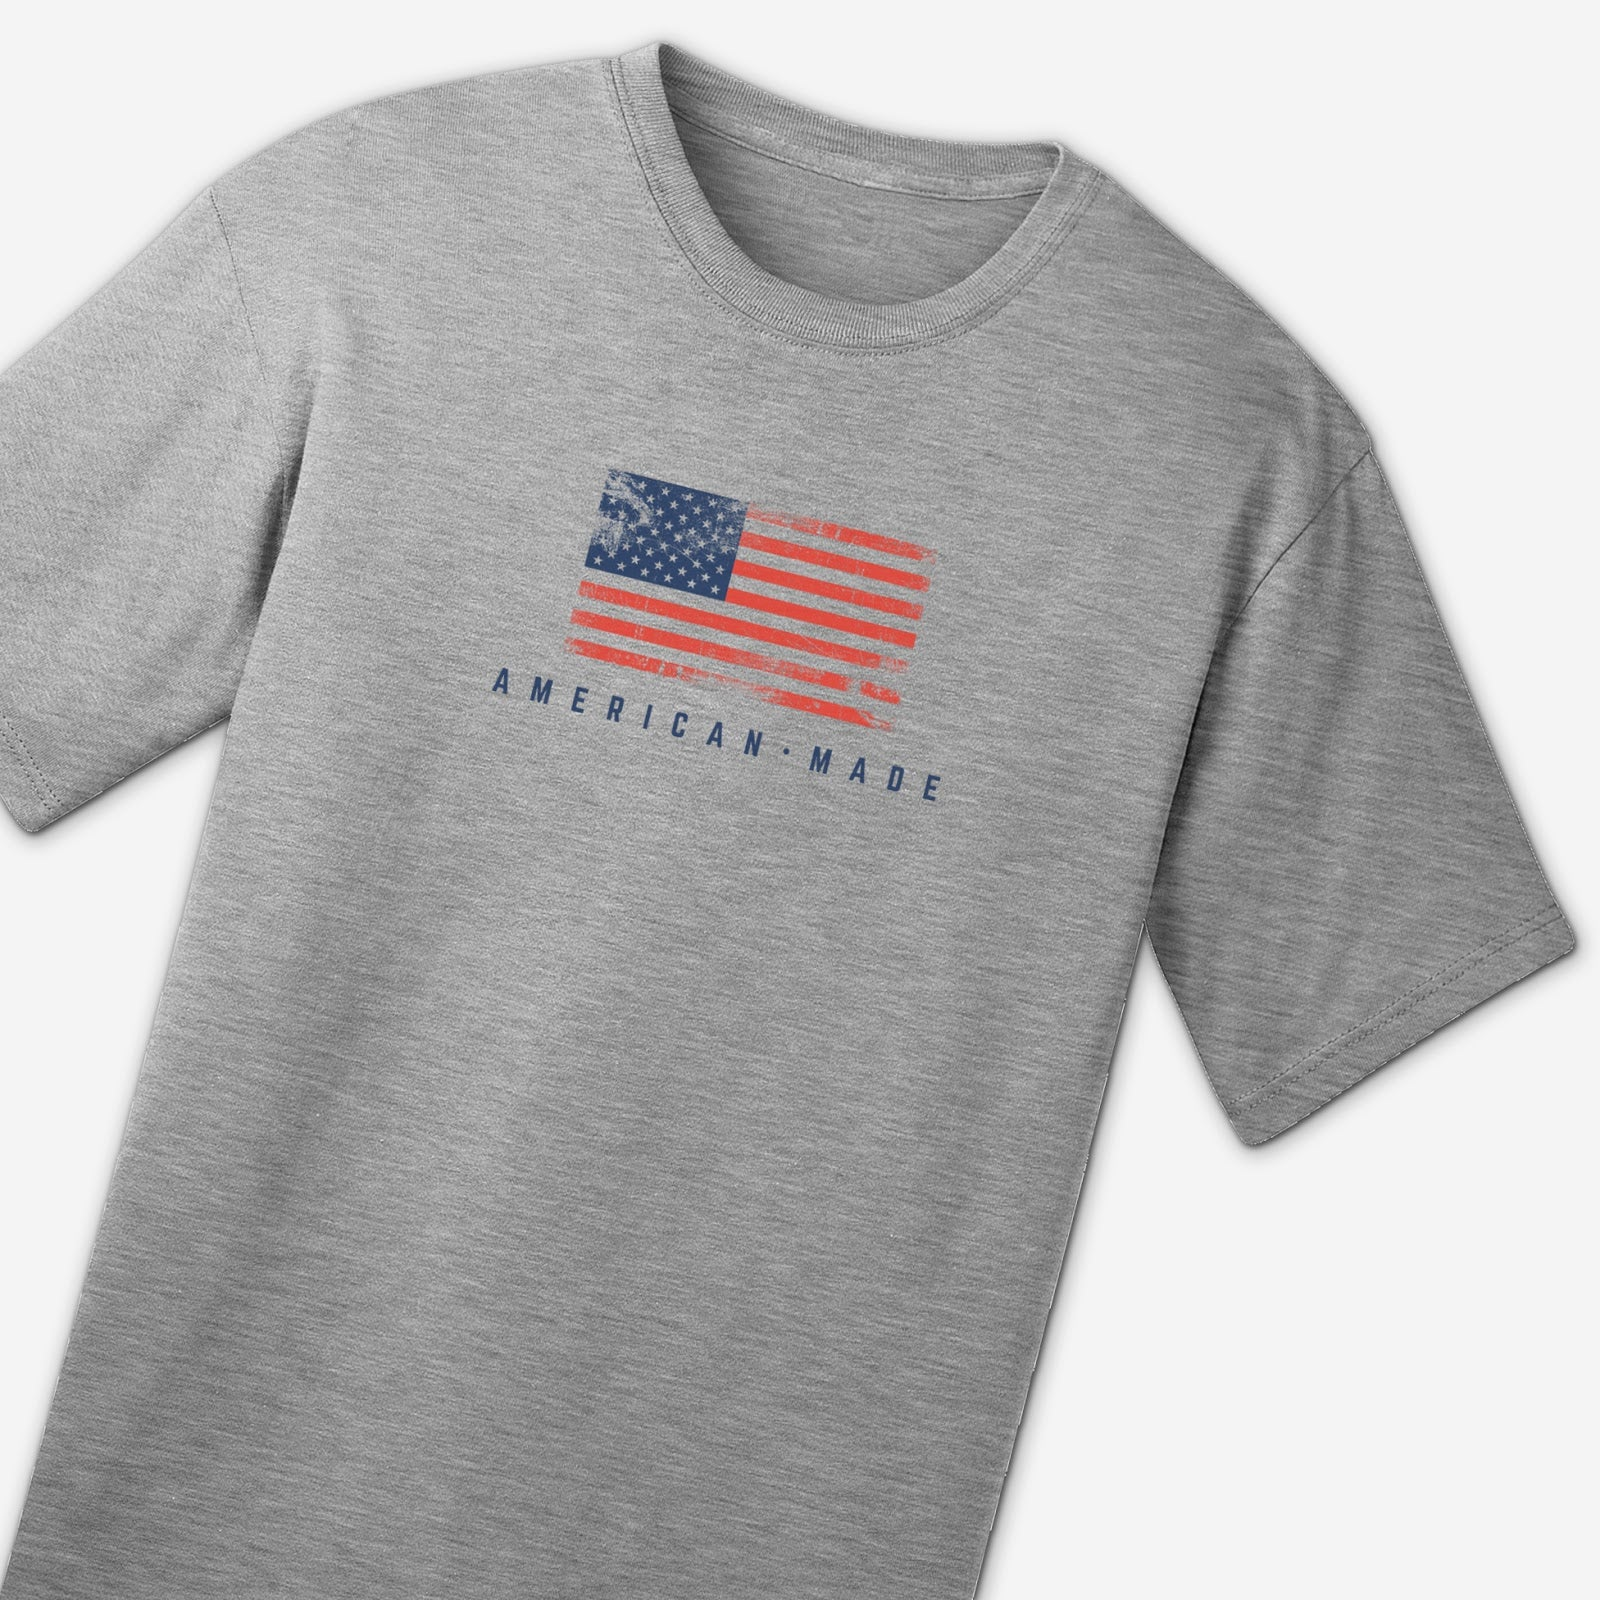 Favorite Rugged American Made Tee